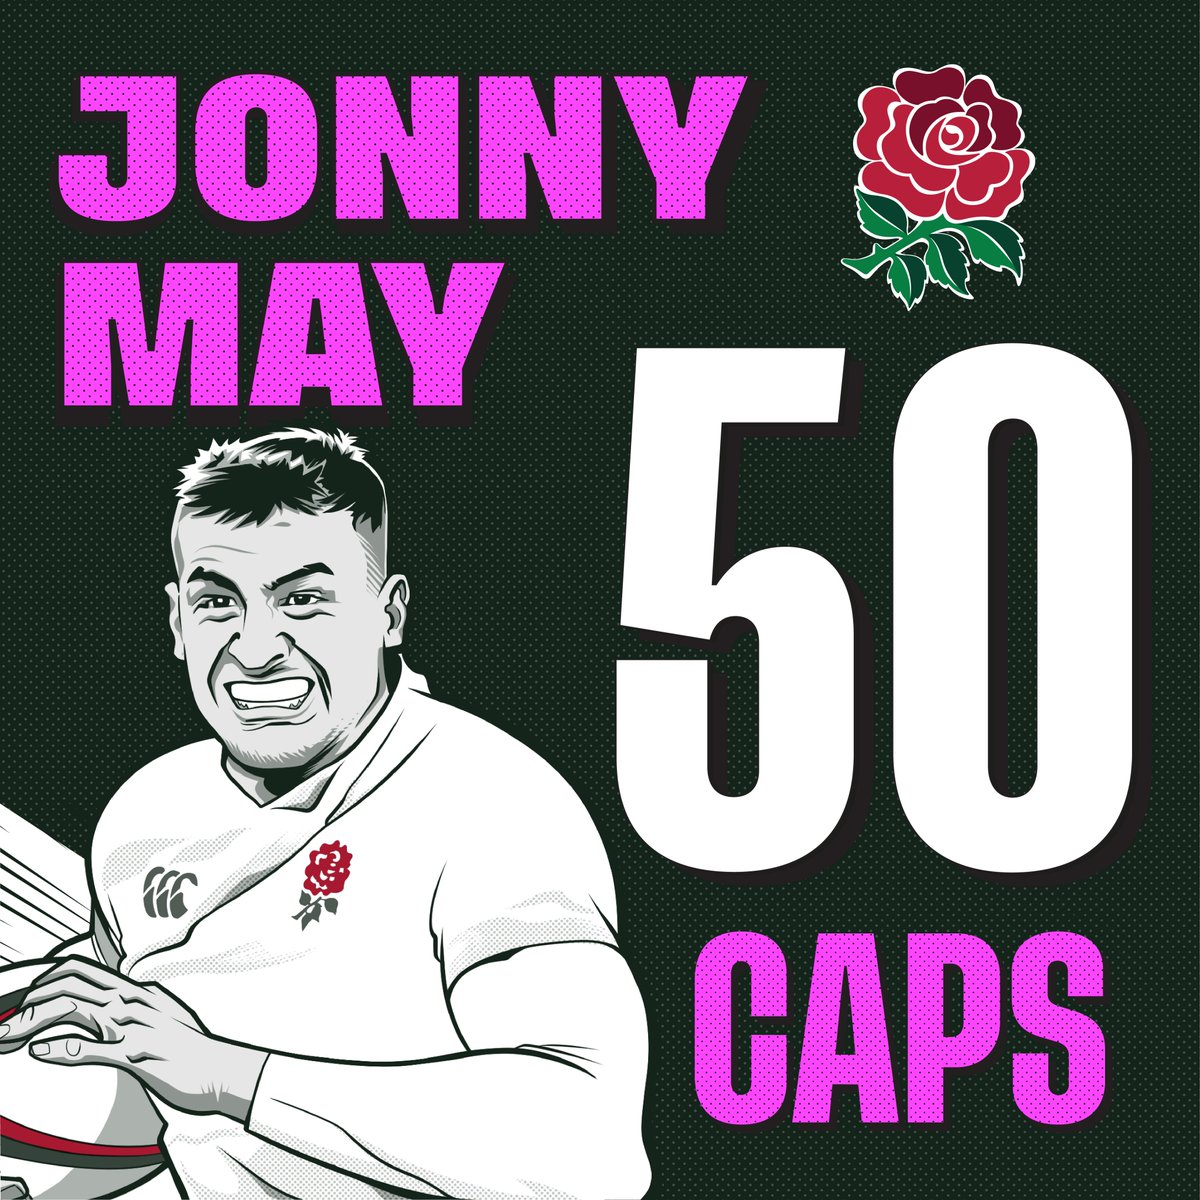 test Twitter Media - #ENGvAUS | Big shout out to Jonny May who wins his 50th England cap today against Australia 🌹  ➡ https://t.co/23WPP5fSHG  #RWC2019  #CarryThemHome https://t.co/ltm5UbY16G